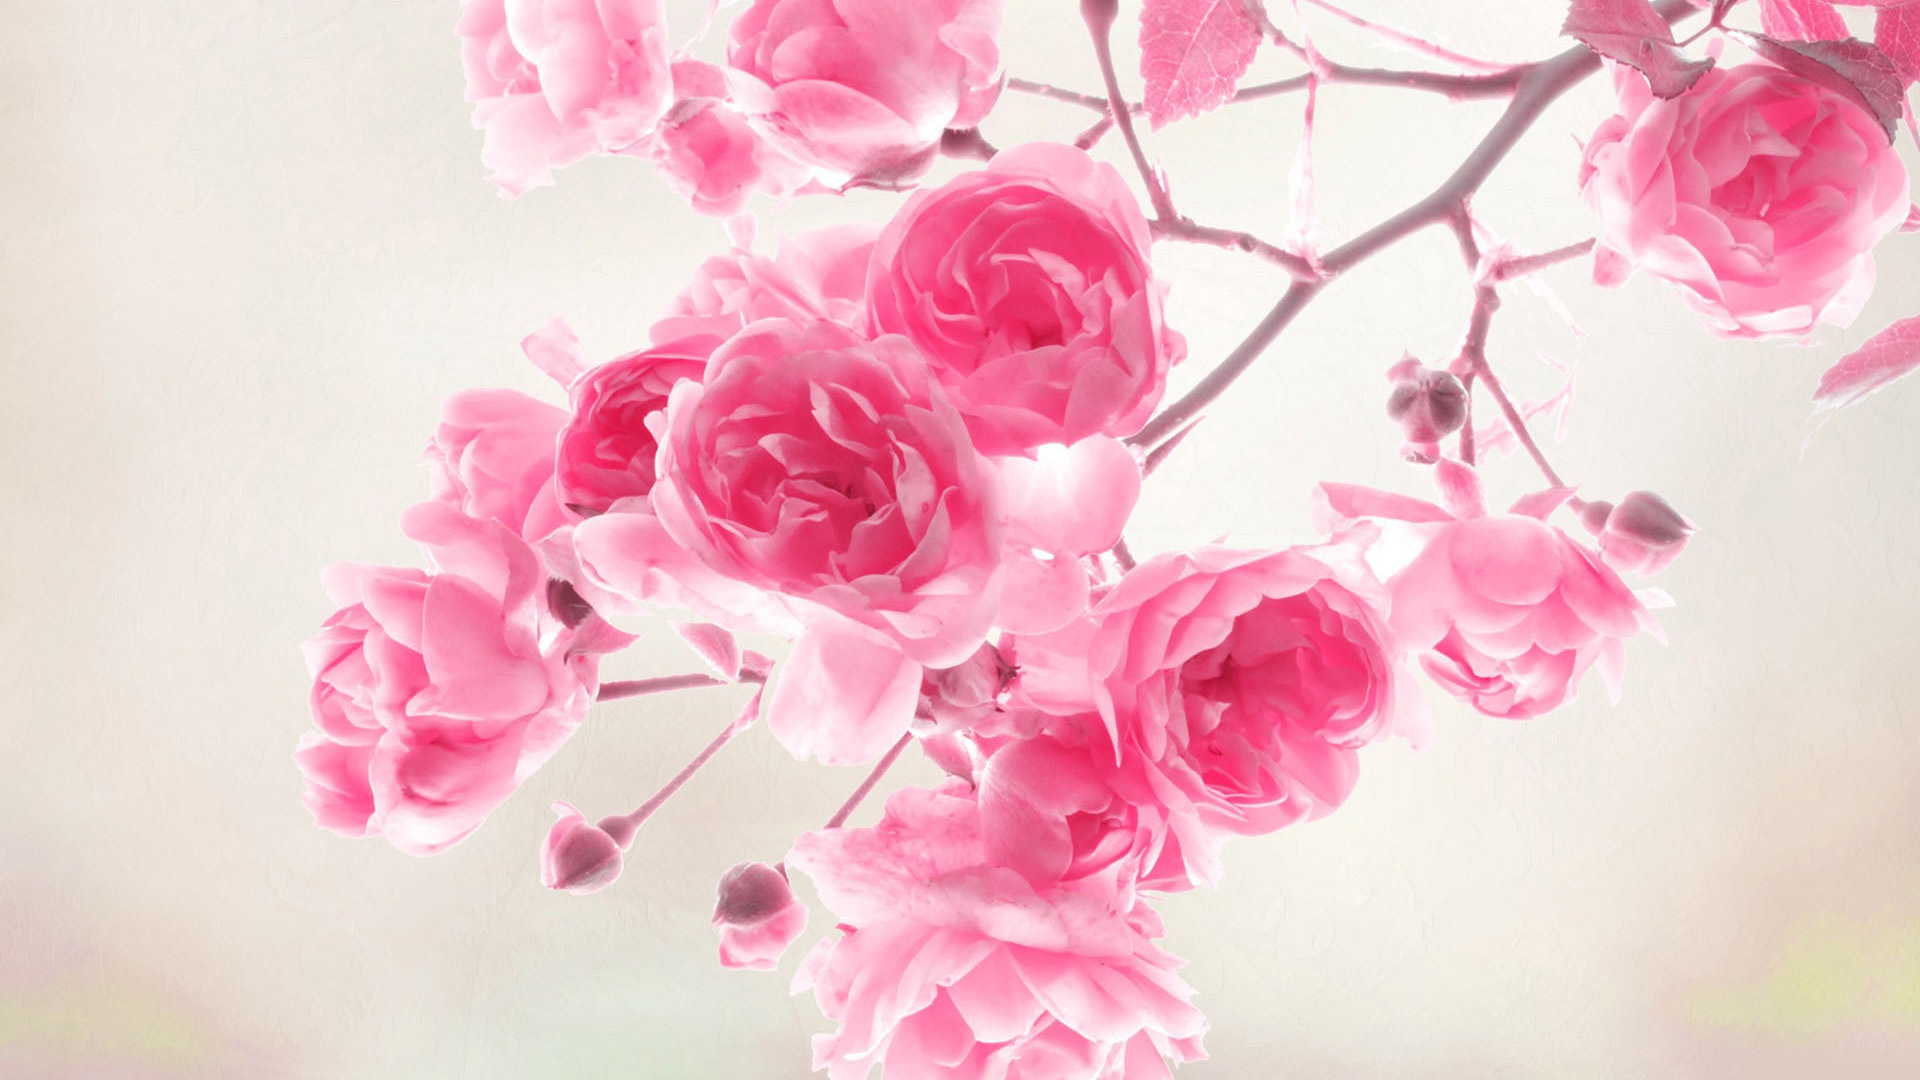 Free cartoon pictures of flowers image free cartoon flowers wallpaper image free